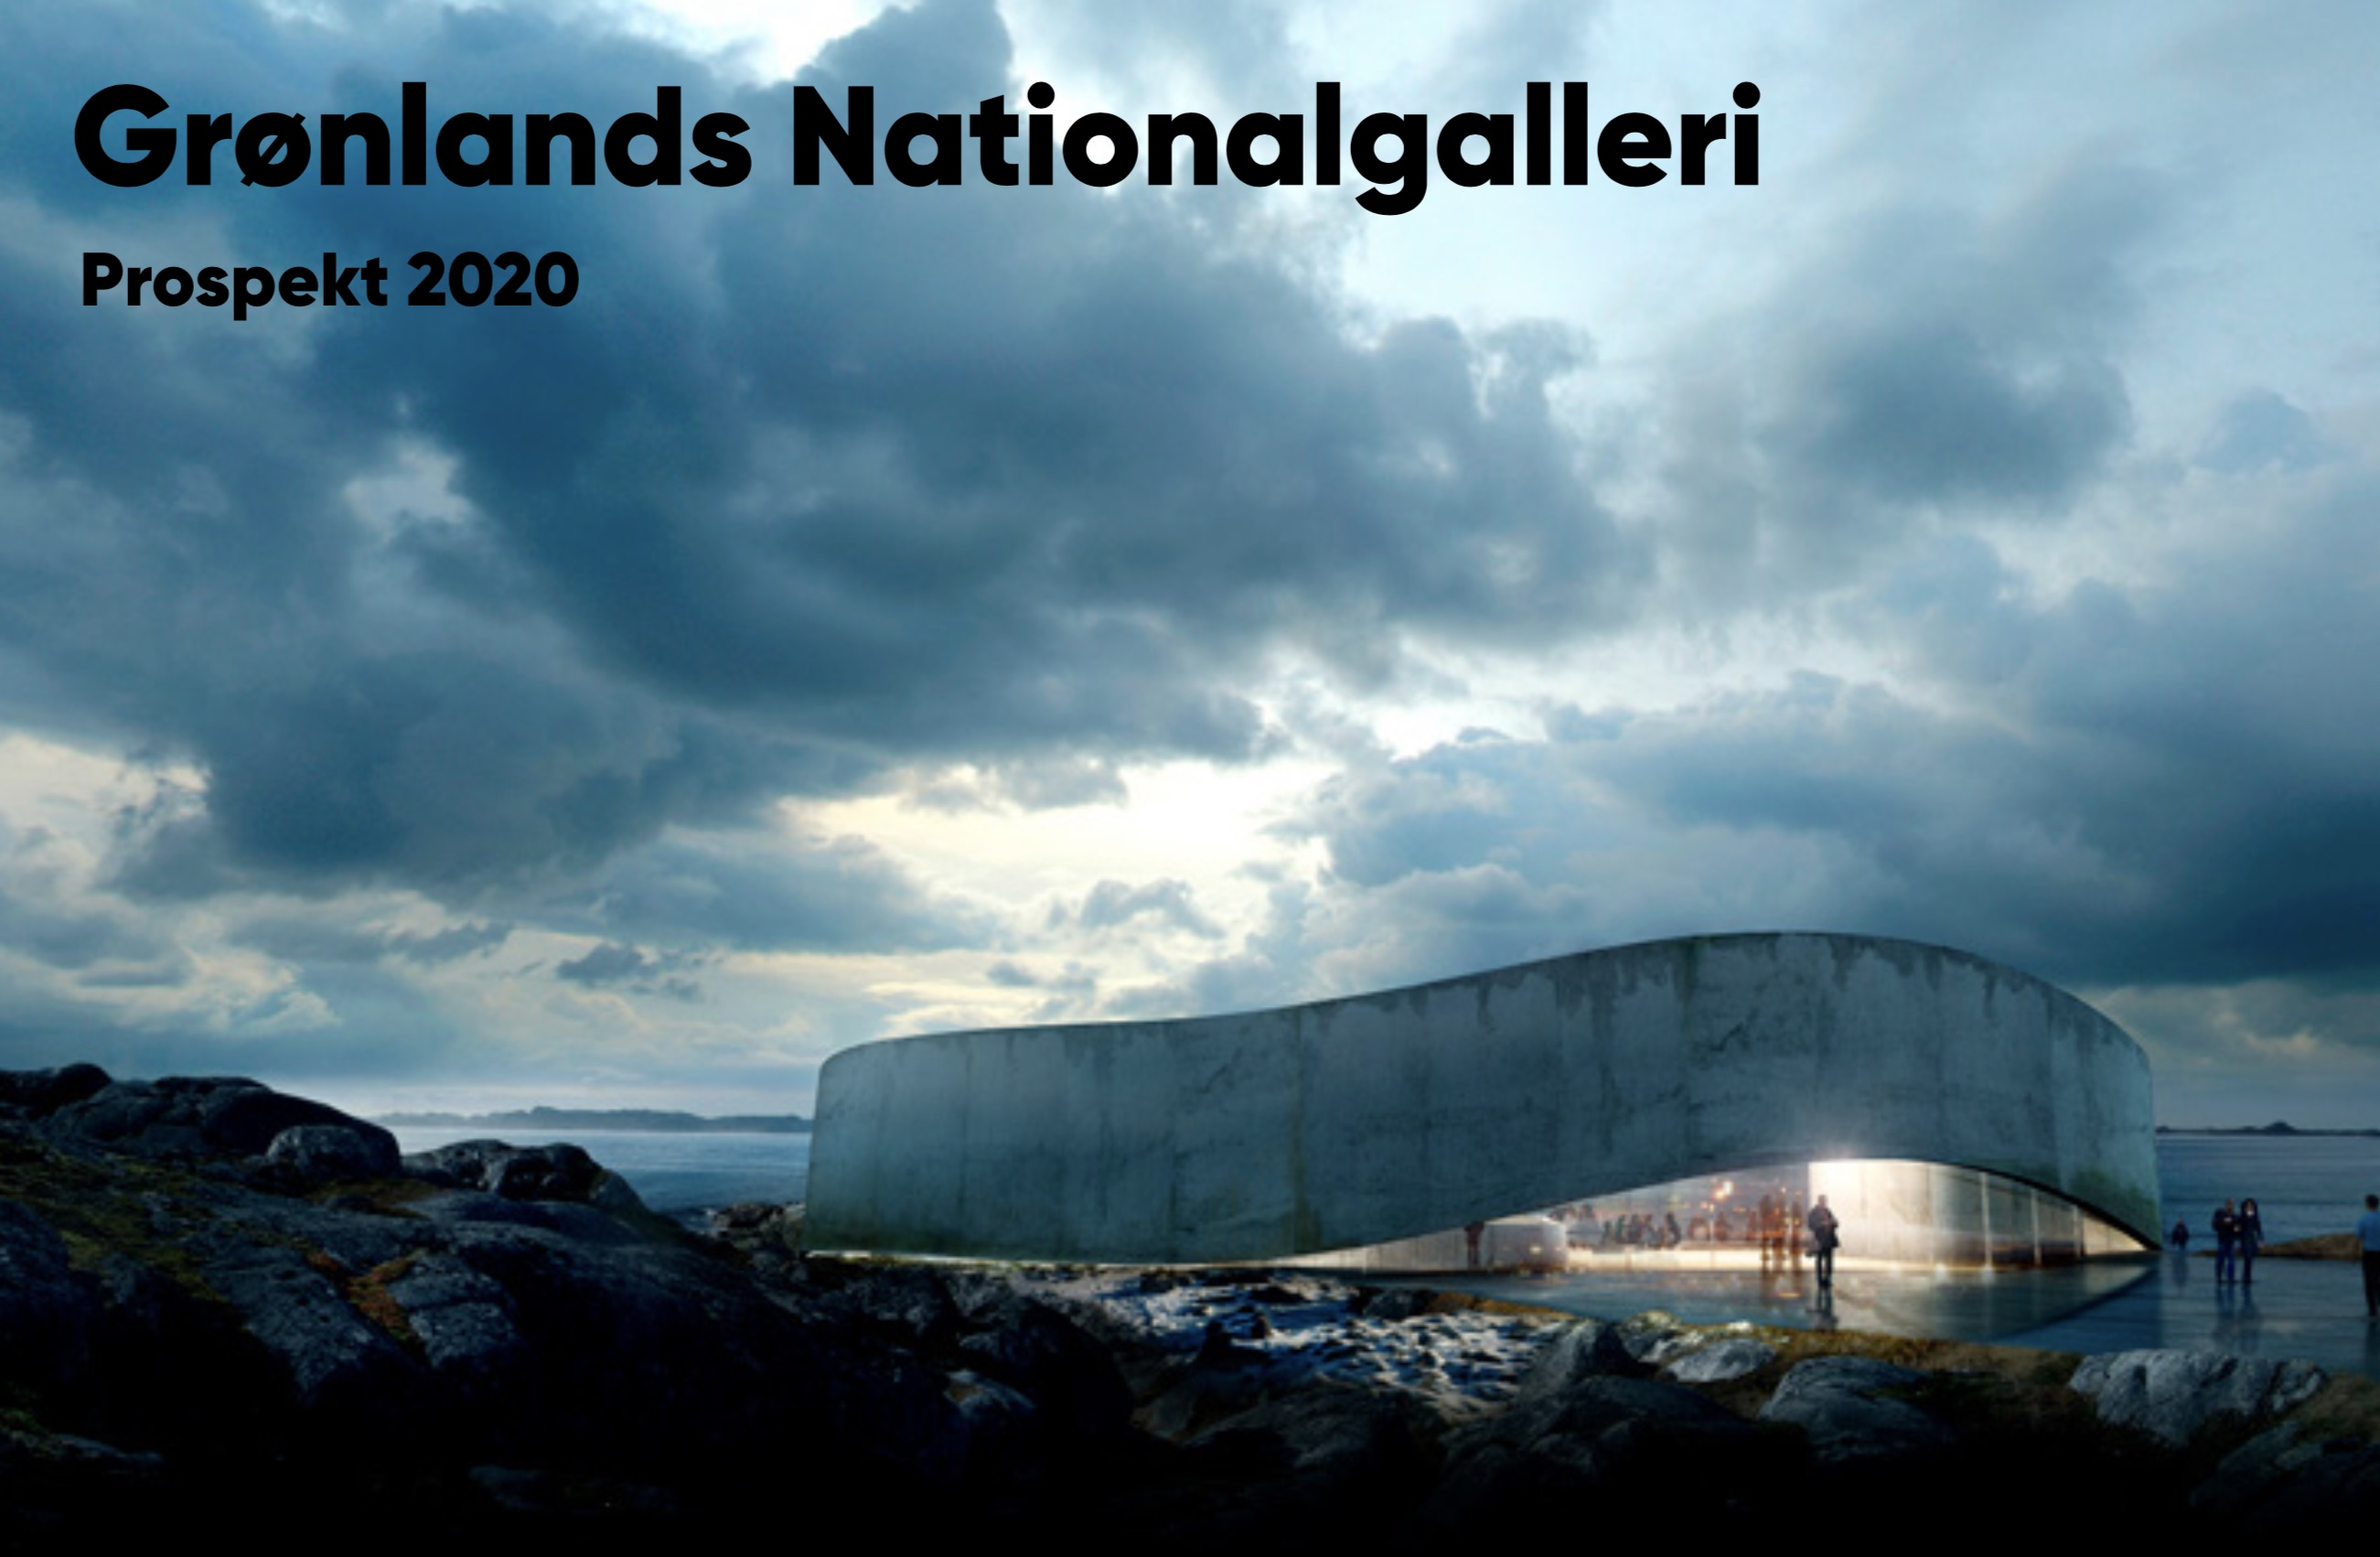 Grønlands Nationalgalleri - Prospekt 2020